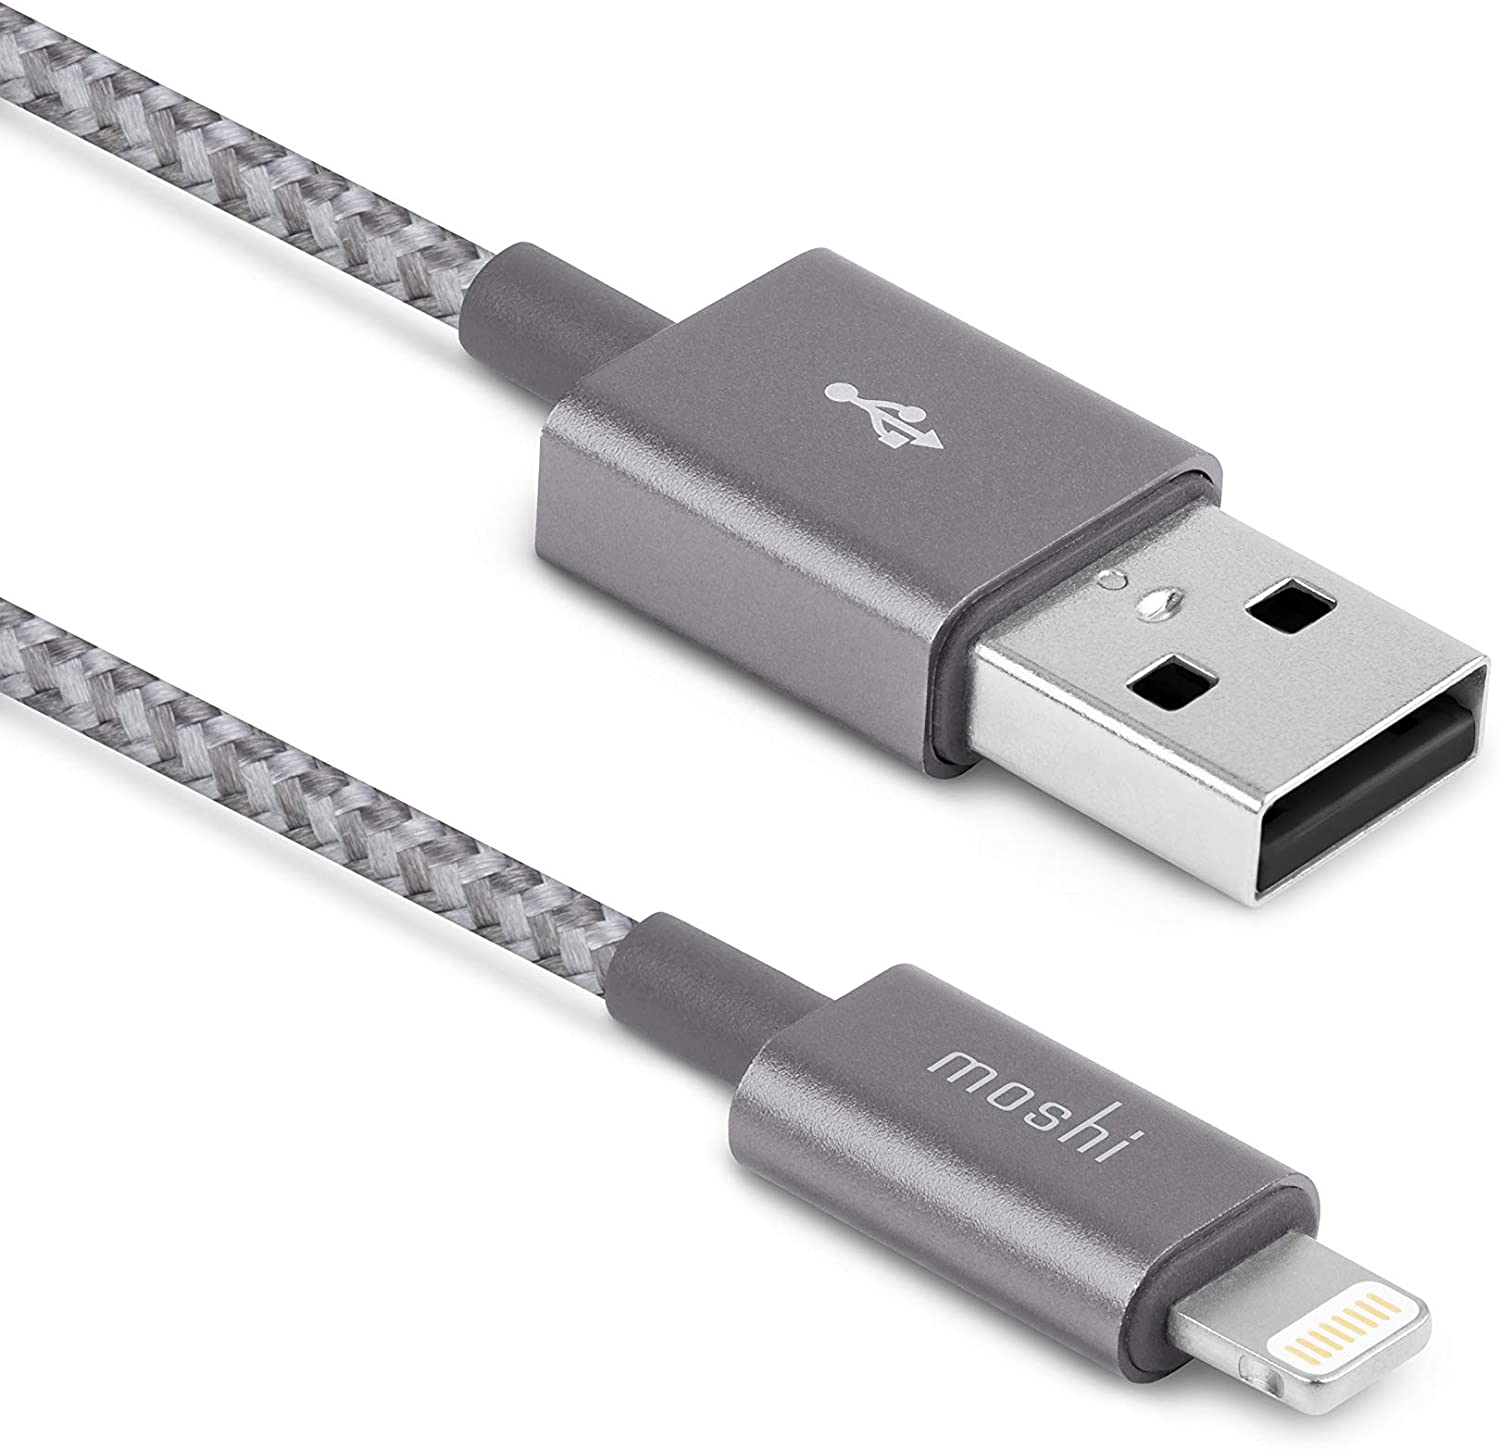 Moshi Integra USB-A to Lightning Cable 4 ft/1.2m, iPhone Charger, MFi-Certified, Ballistic NylonBraiding, Compatible with iPhone 12, AirPods Pro, iPad, Titanium Gray